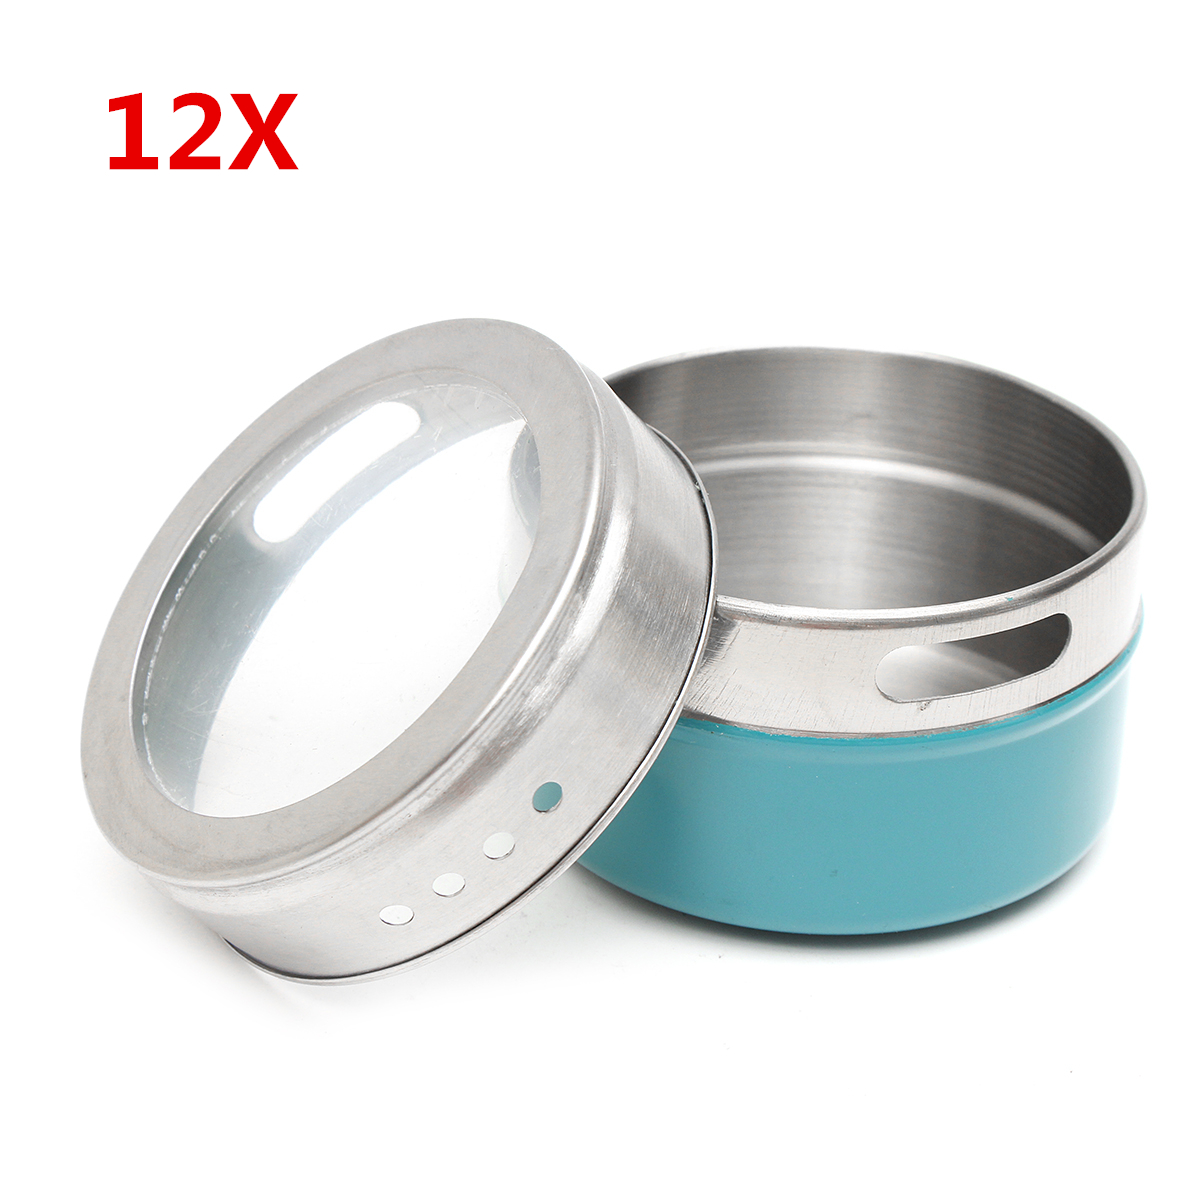 12Pcs Stainless Steel Magnetic Spice Tins Storage Conta